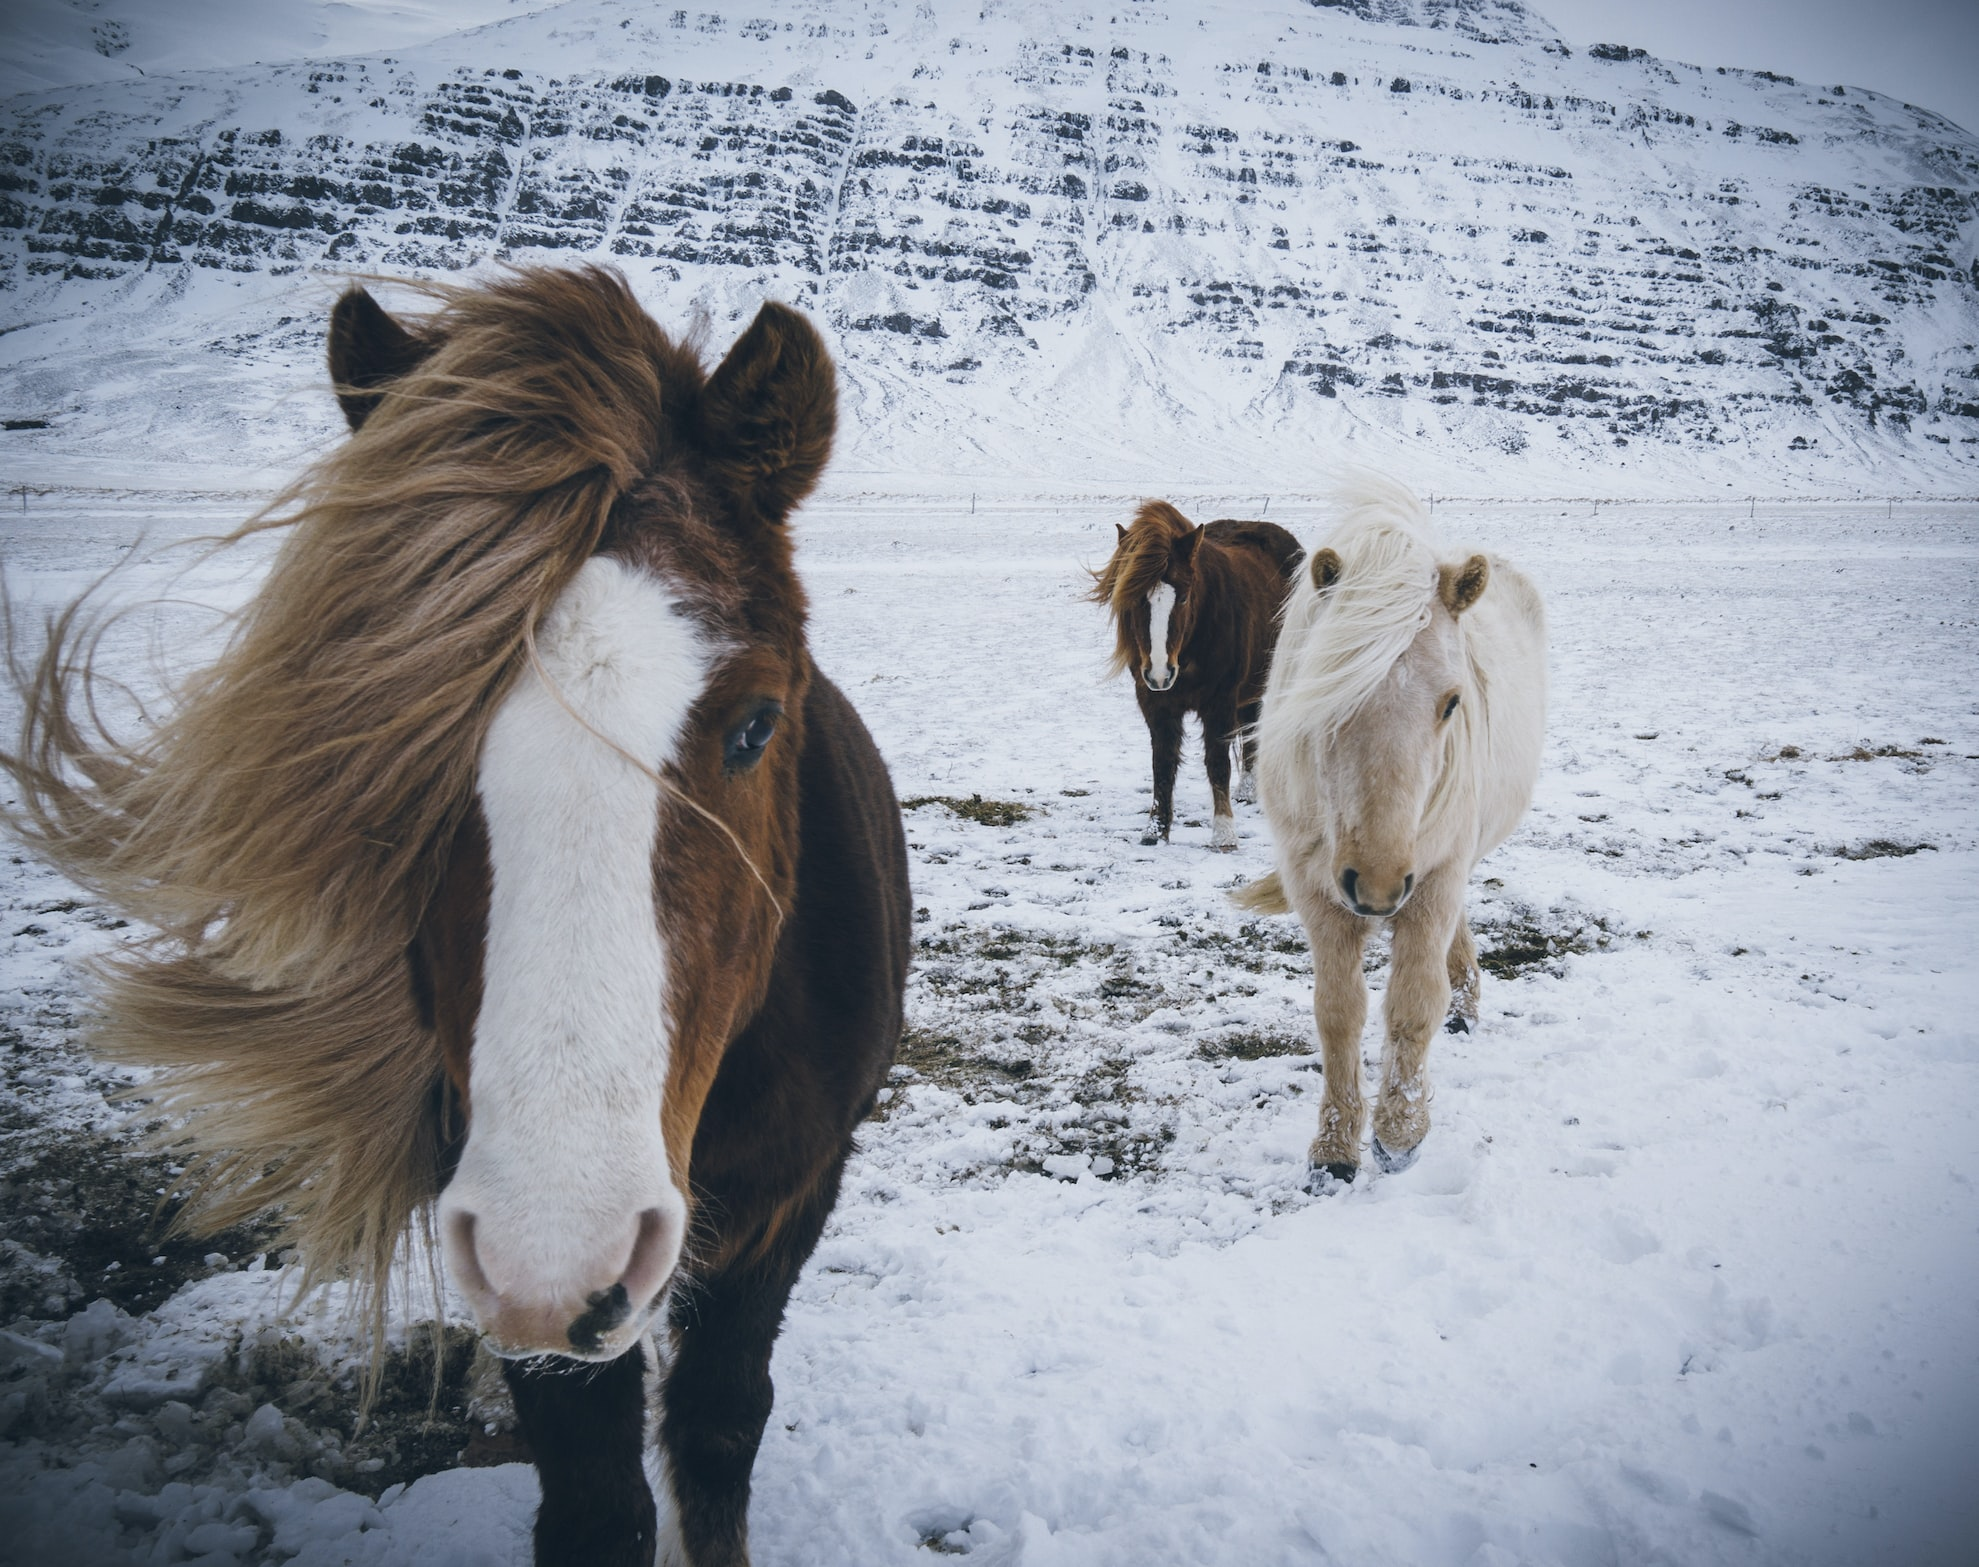 brown and white horses on snow-covered land